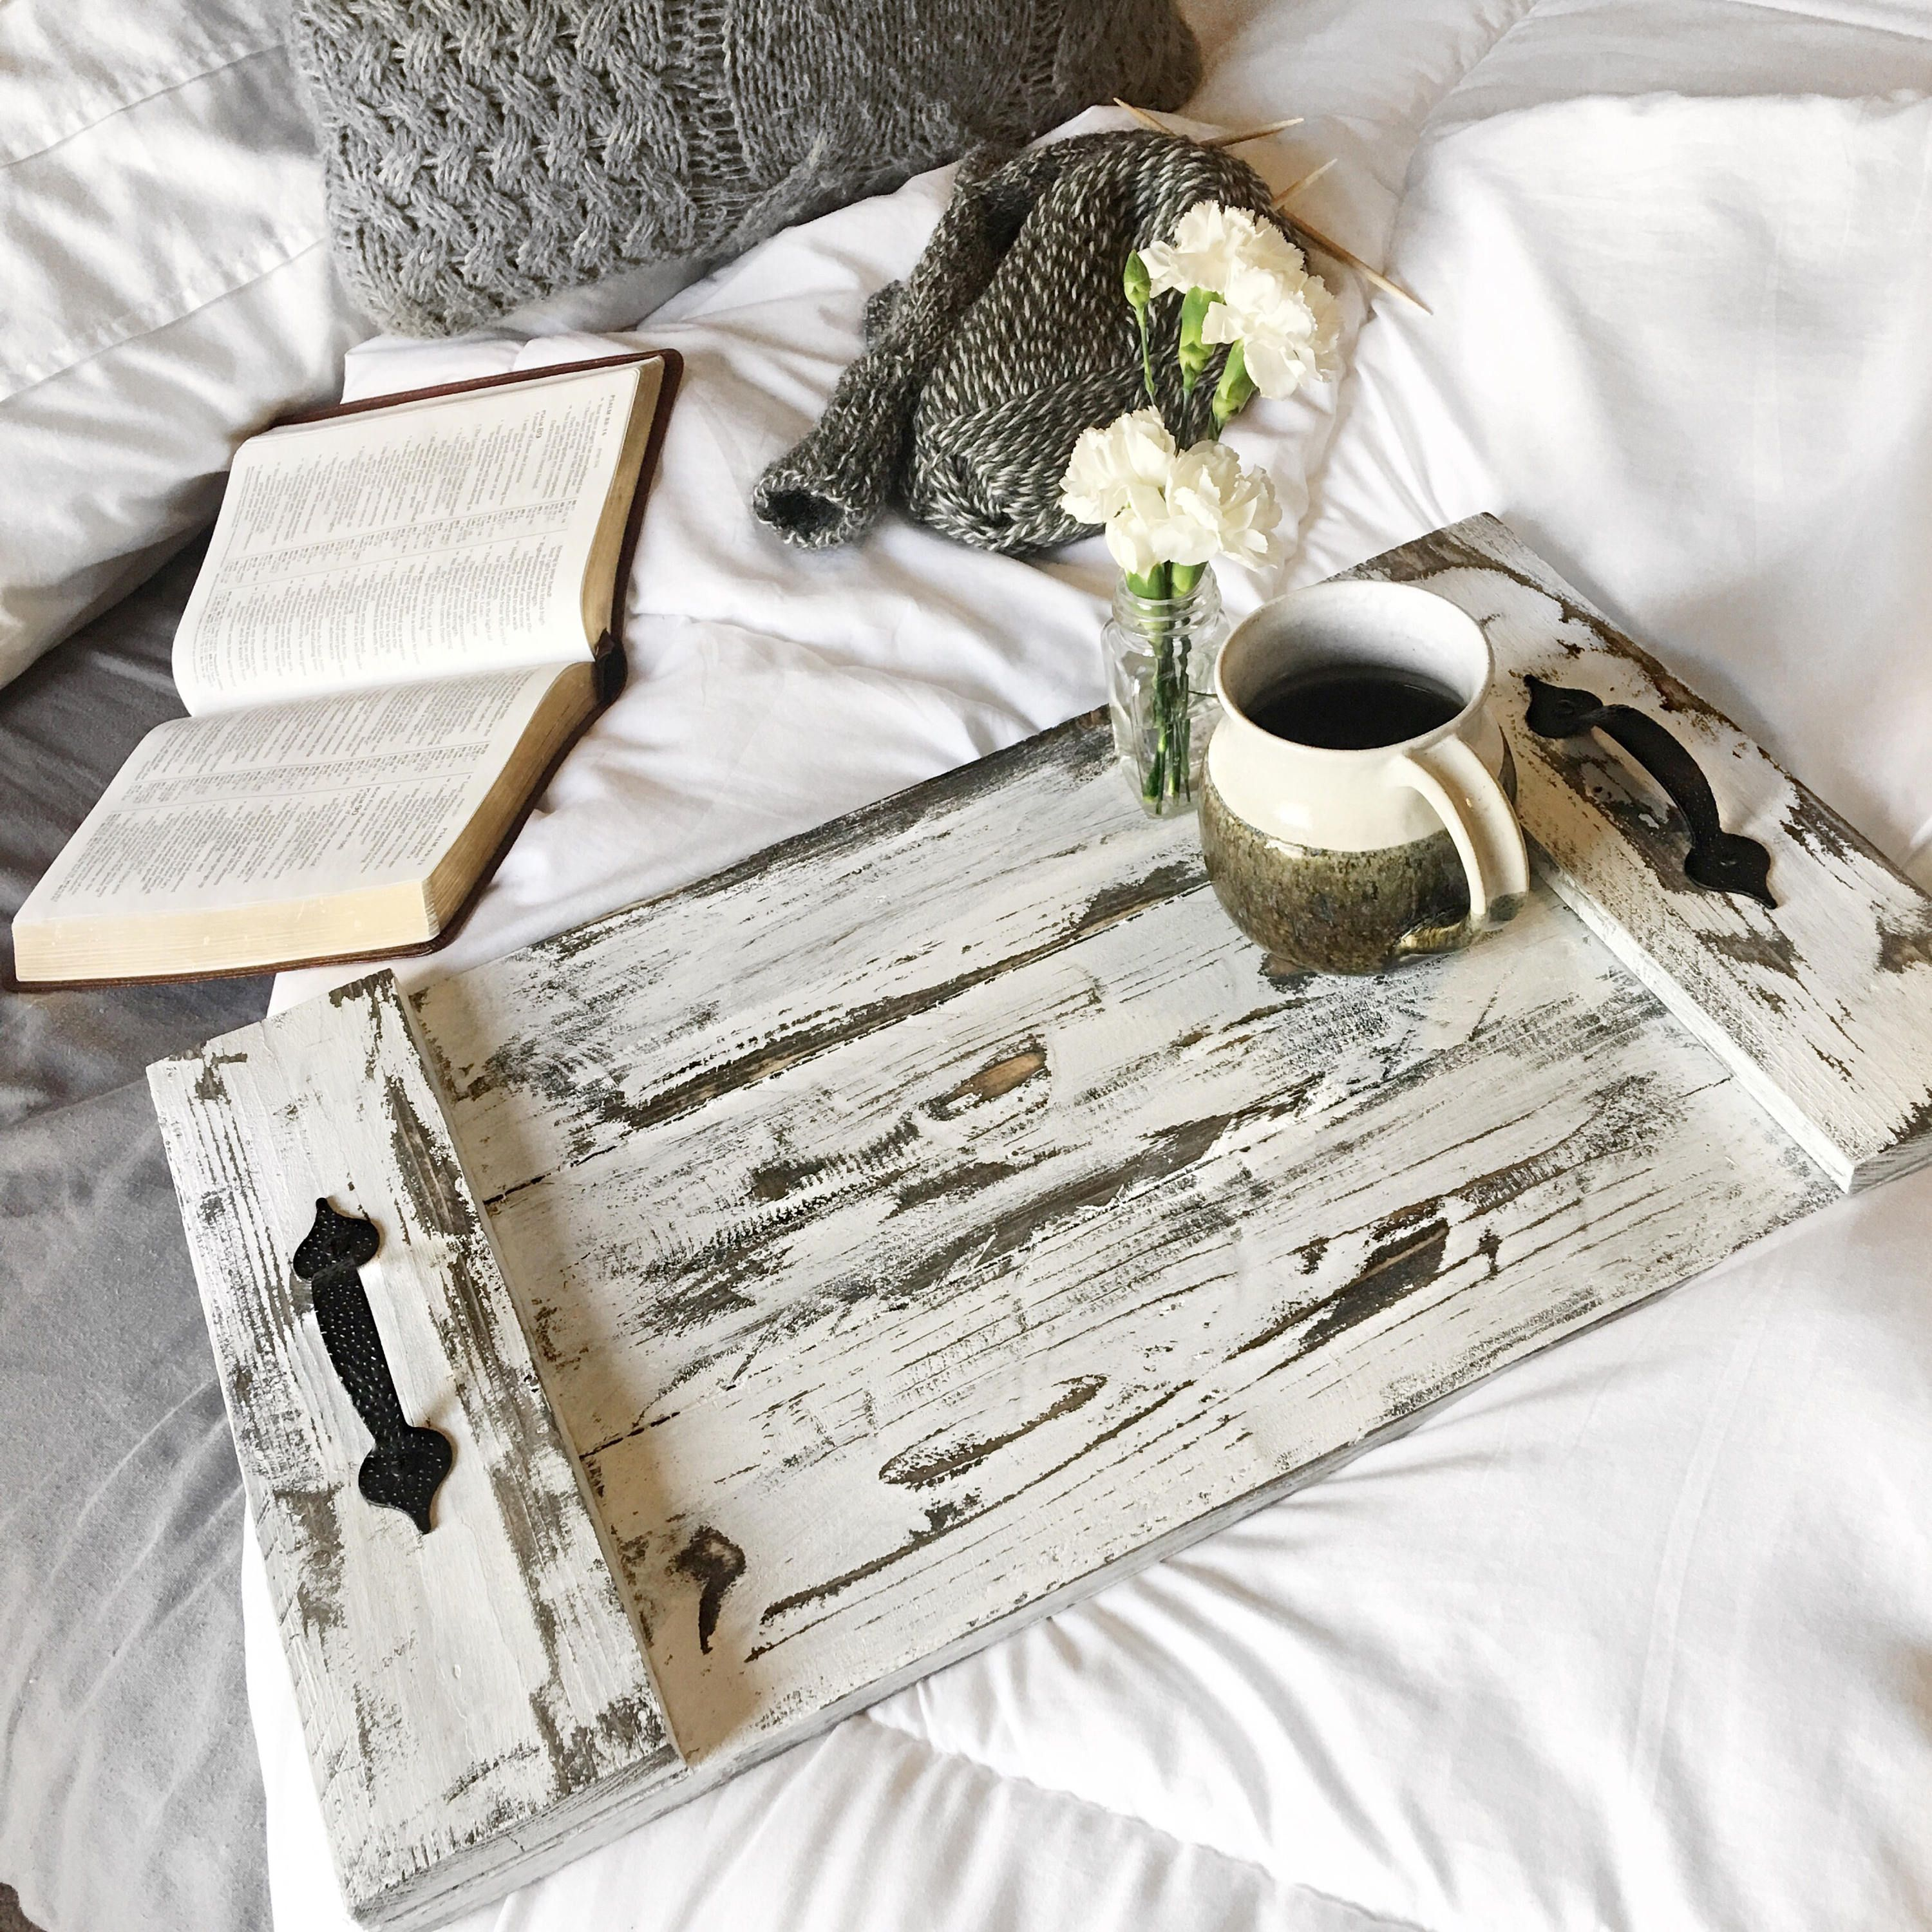 Rustic Wooden Serving Tray Gt Gt Sized At Approximately 20x12x3 Gt Gt Handmade By Heart Hooked H Wooden Serving Trays Craft Fair Displays Serving Tray